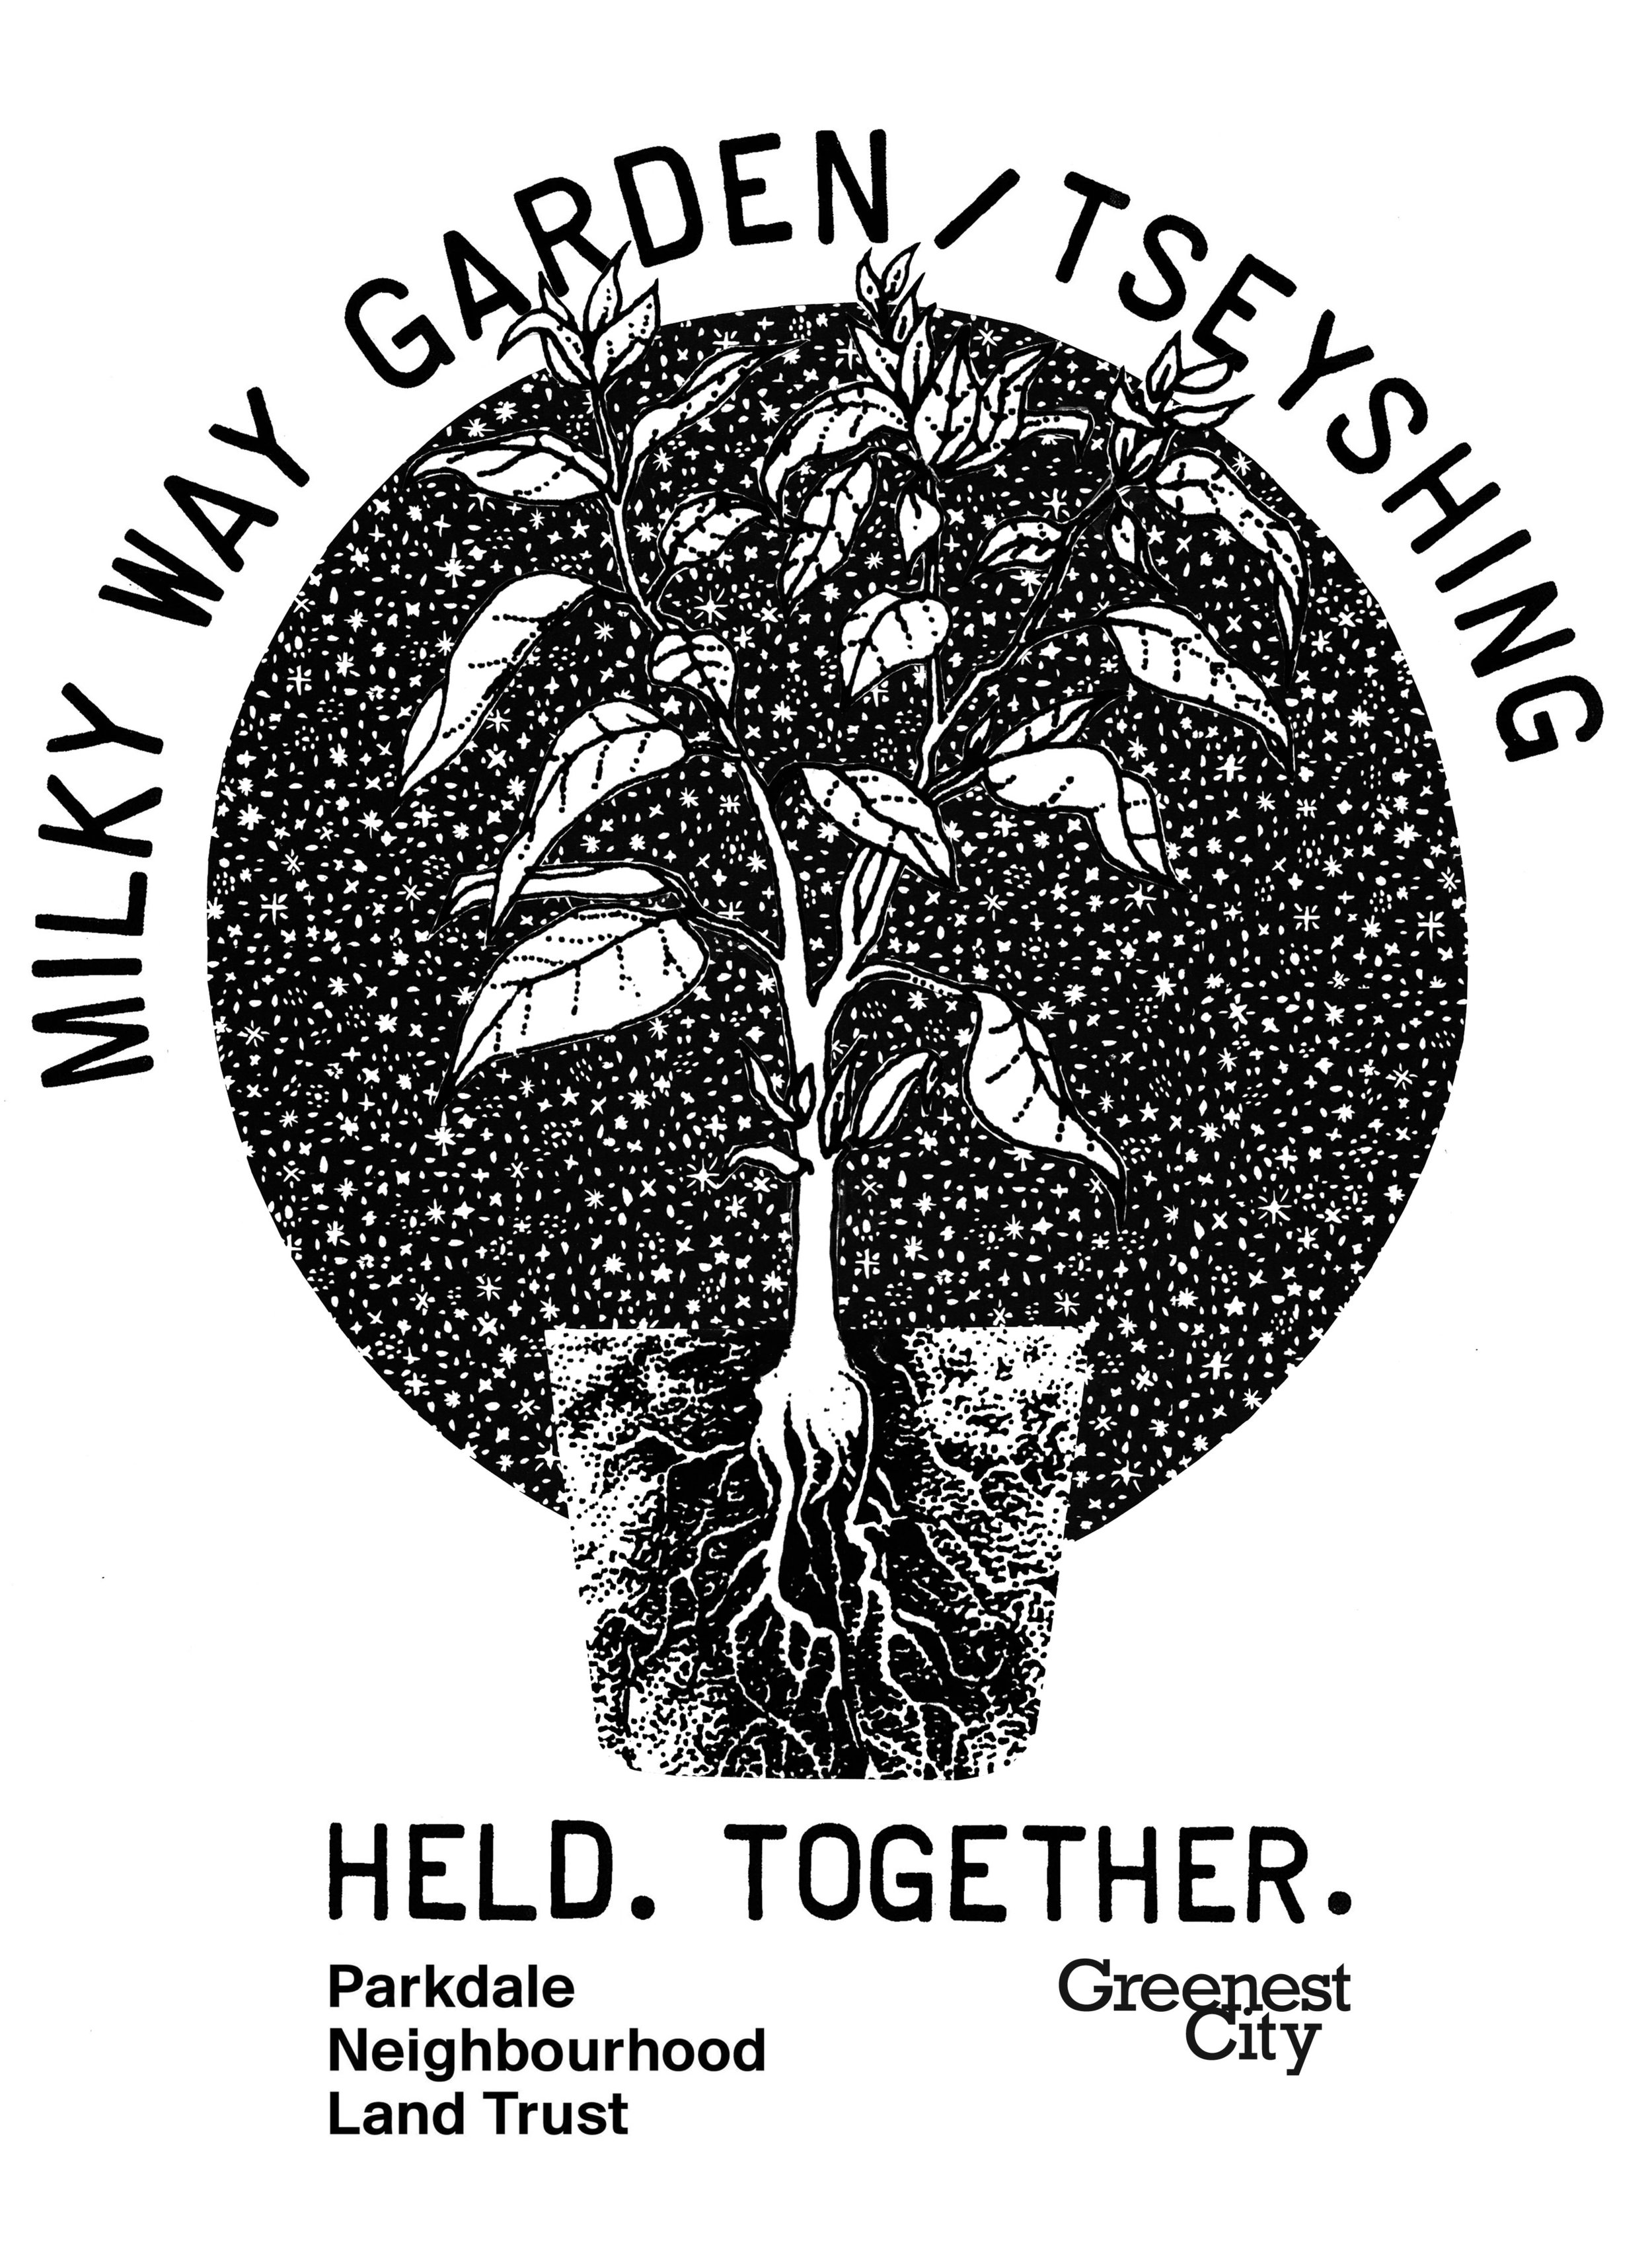 t-shirt design for Milky Way Garden  2016  The Milky Way Garden is a publicly accessible lot that is managed and owned by Greenest City and Parkdale Neighborhood Land Trust. For the last nine years, this lot has included a Second Language newcomers garden, as well as various neighbourhood potlucks and community events.  Their vision is to create a vibrant, multipurpose community space through urban agriculture and environmental projects that increase access to healthy fresh food, while creating opportunities for learning, training, employment, and community connections.